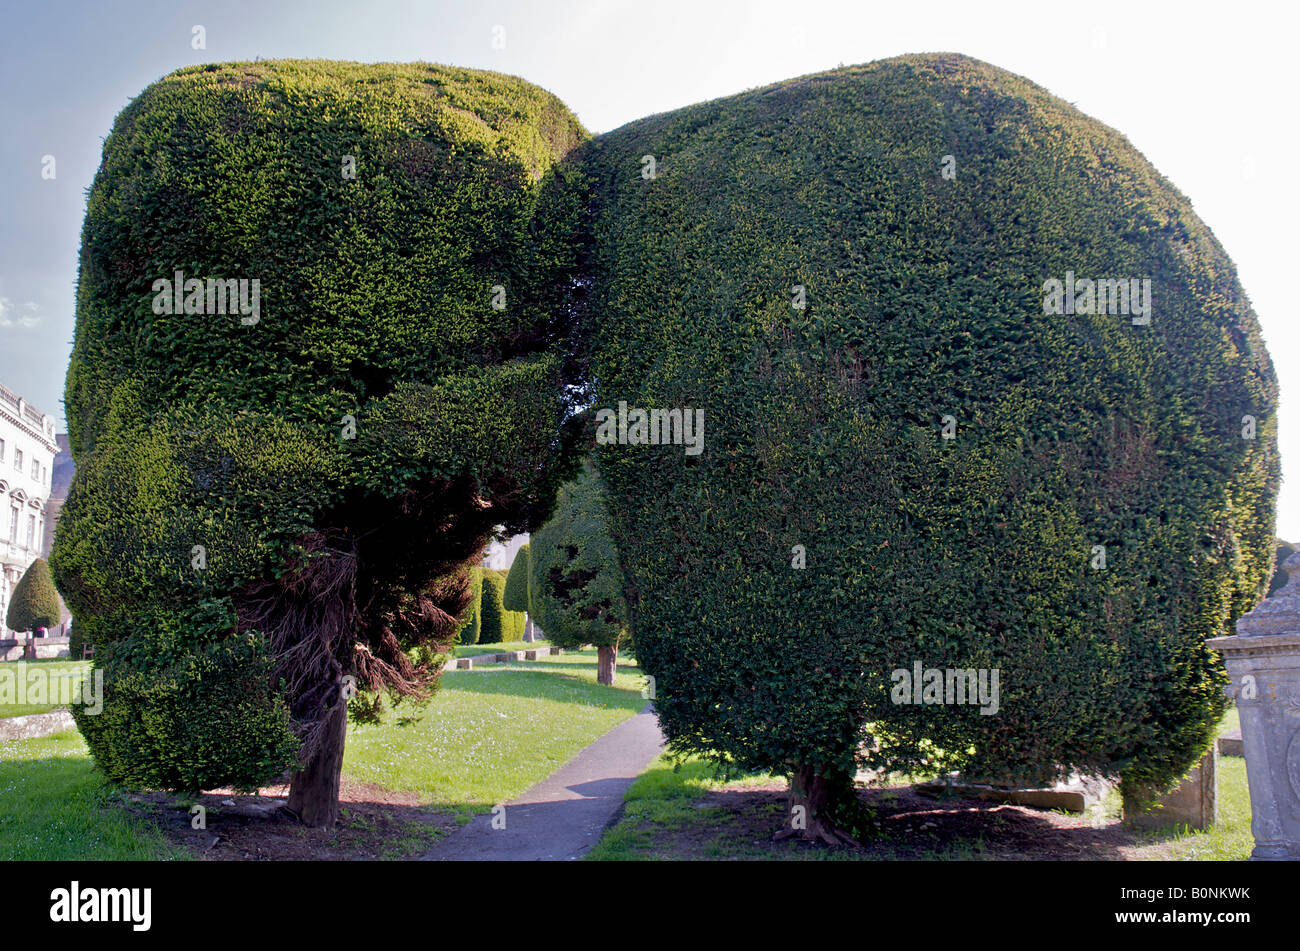 Yew trees in St Mary's church at Painswick in the Cotswolds - Stock Image